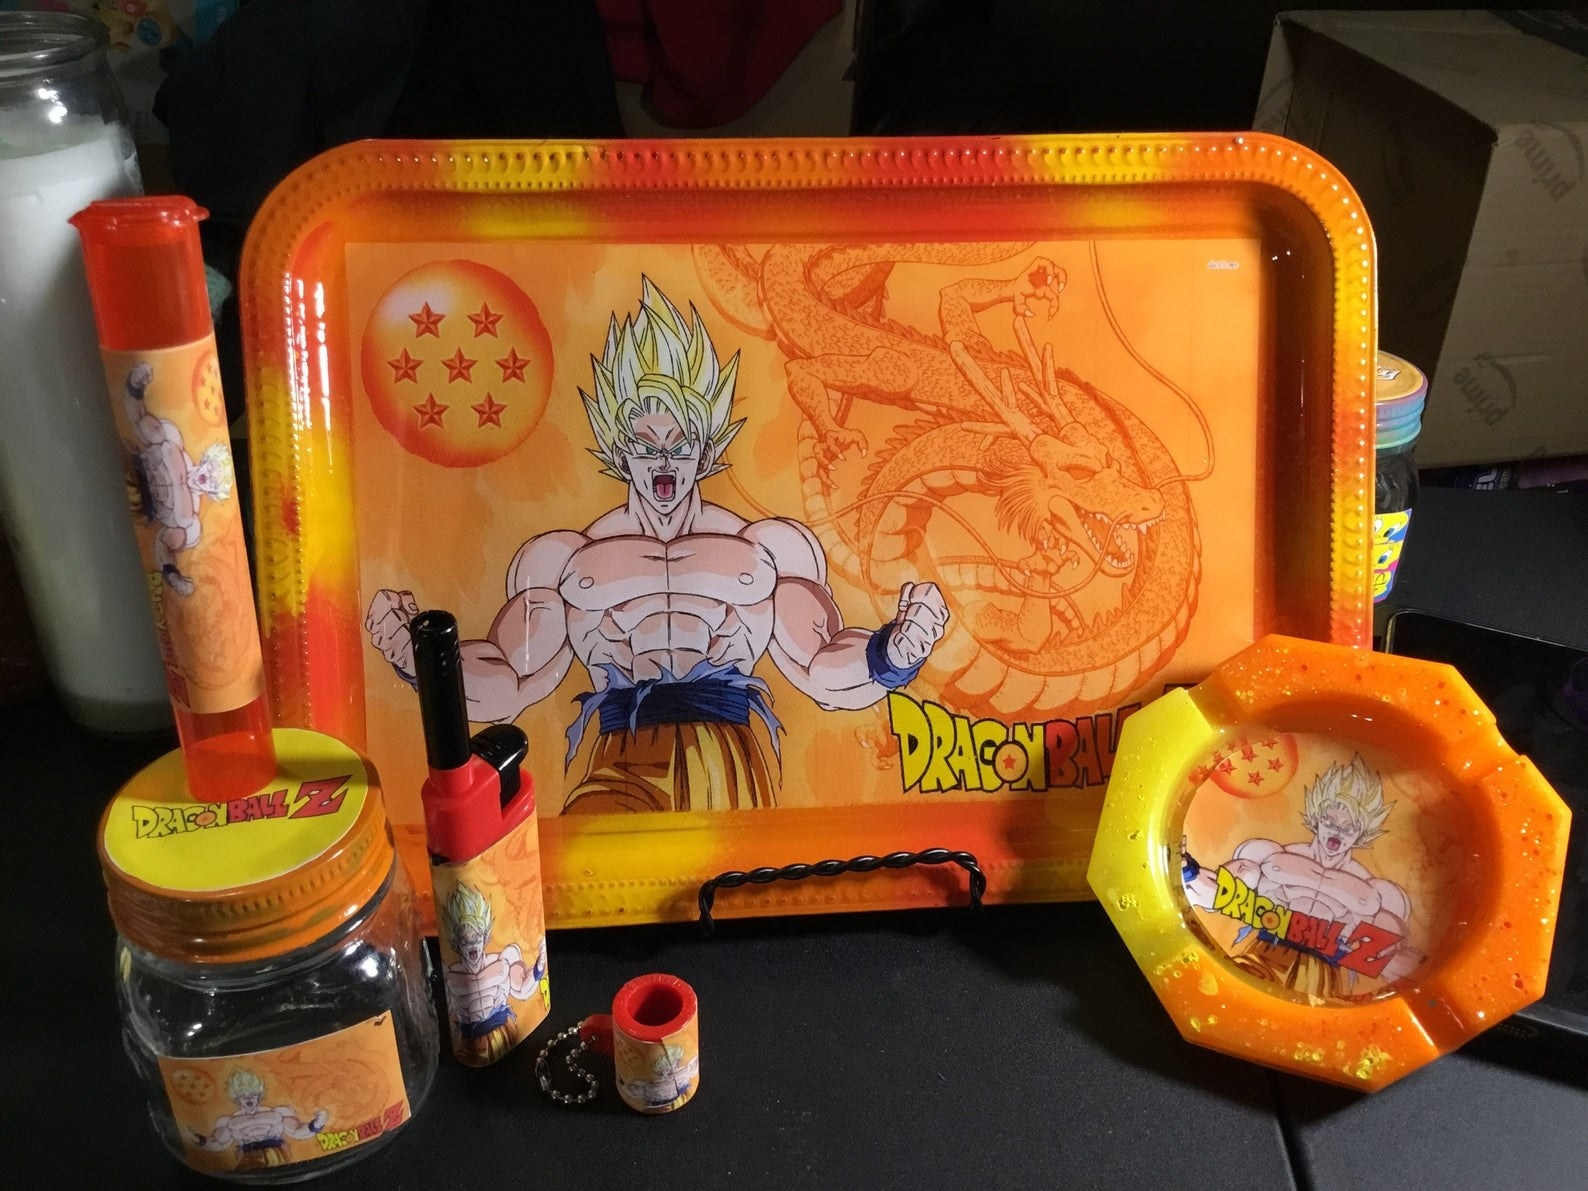 the set with a tray, jar, lighter, and ashtray with the Dragon Ball Z images all over it